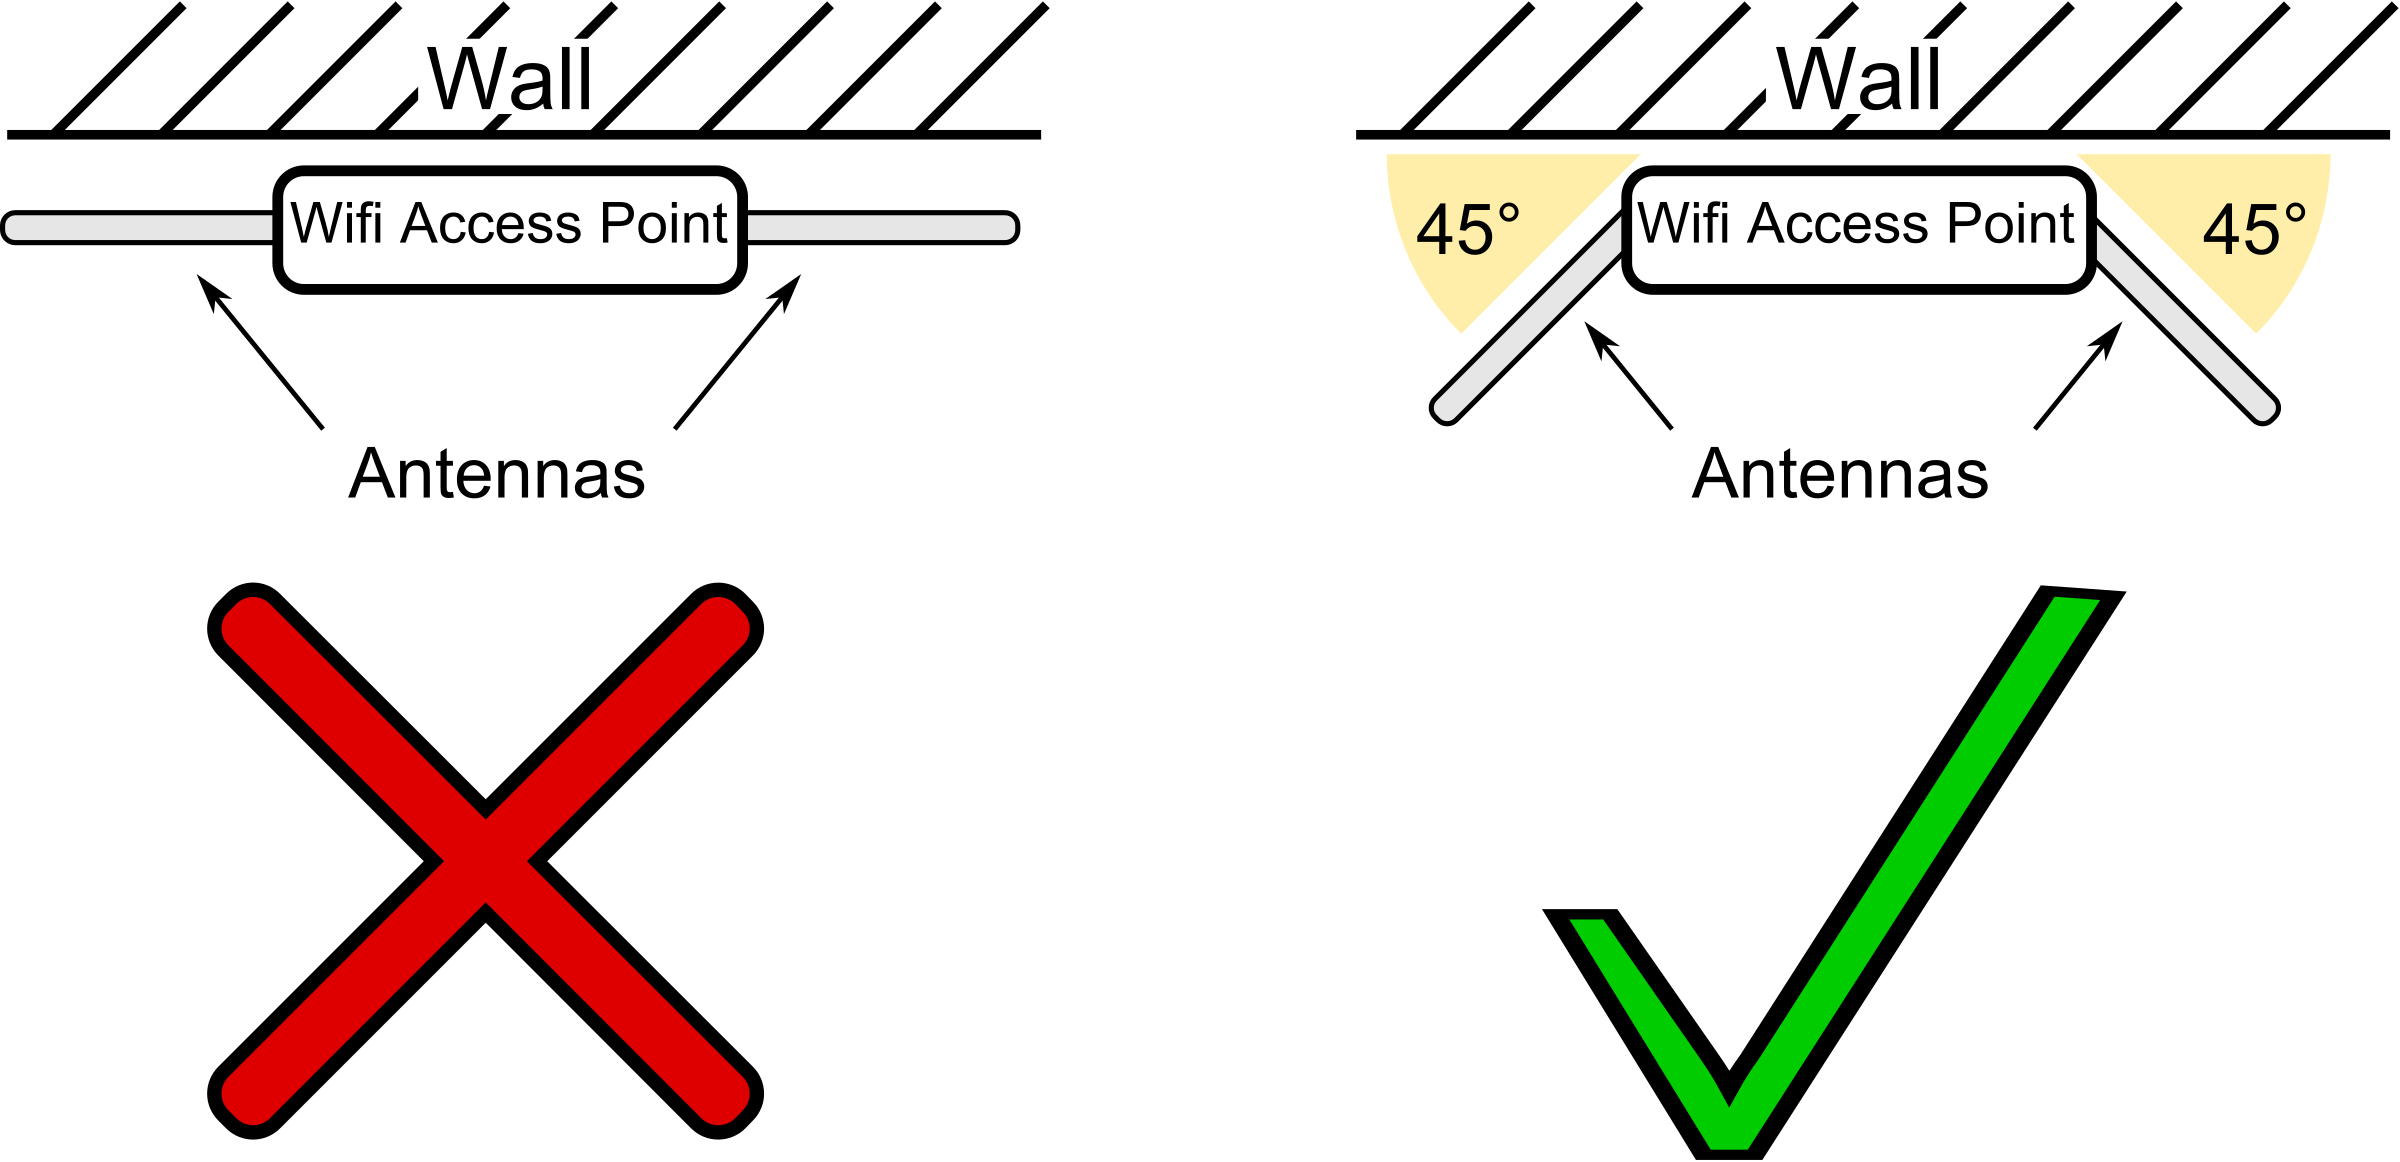 Wifi Access Point schema and antennas position by cyberscooty